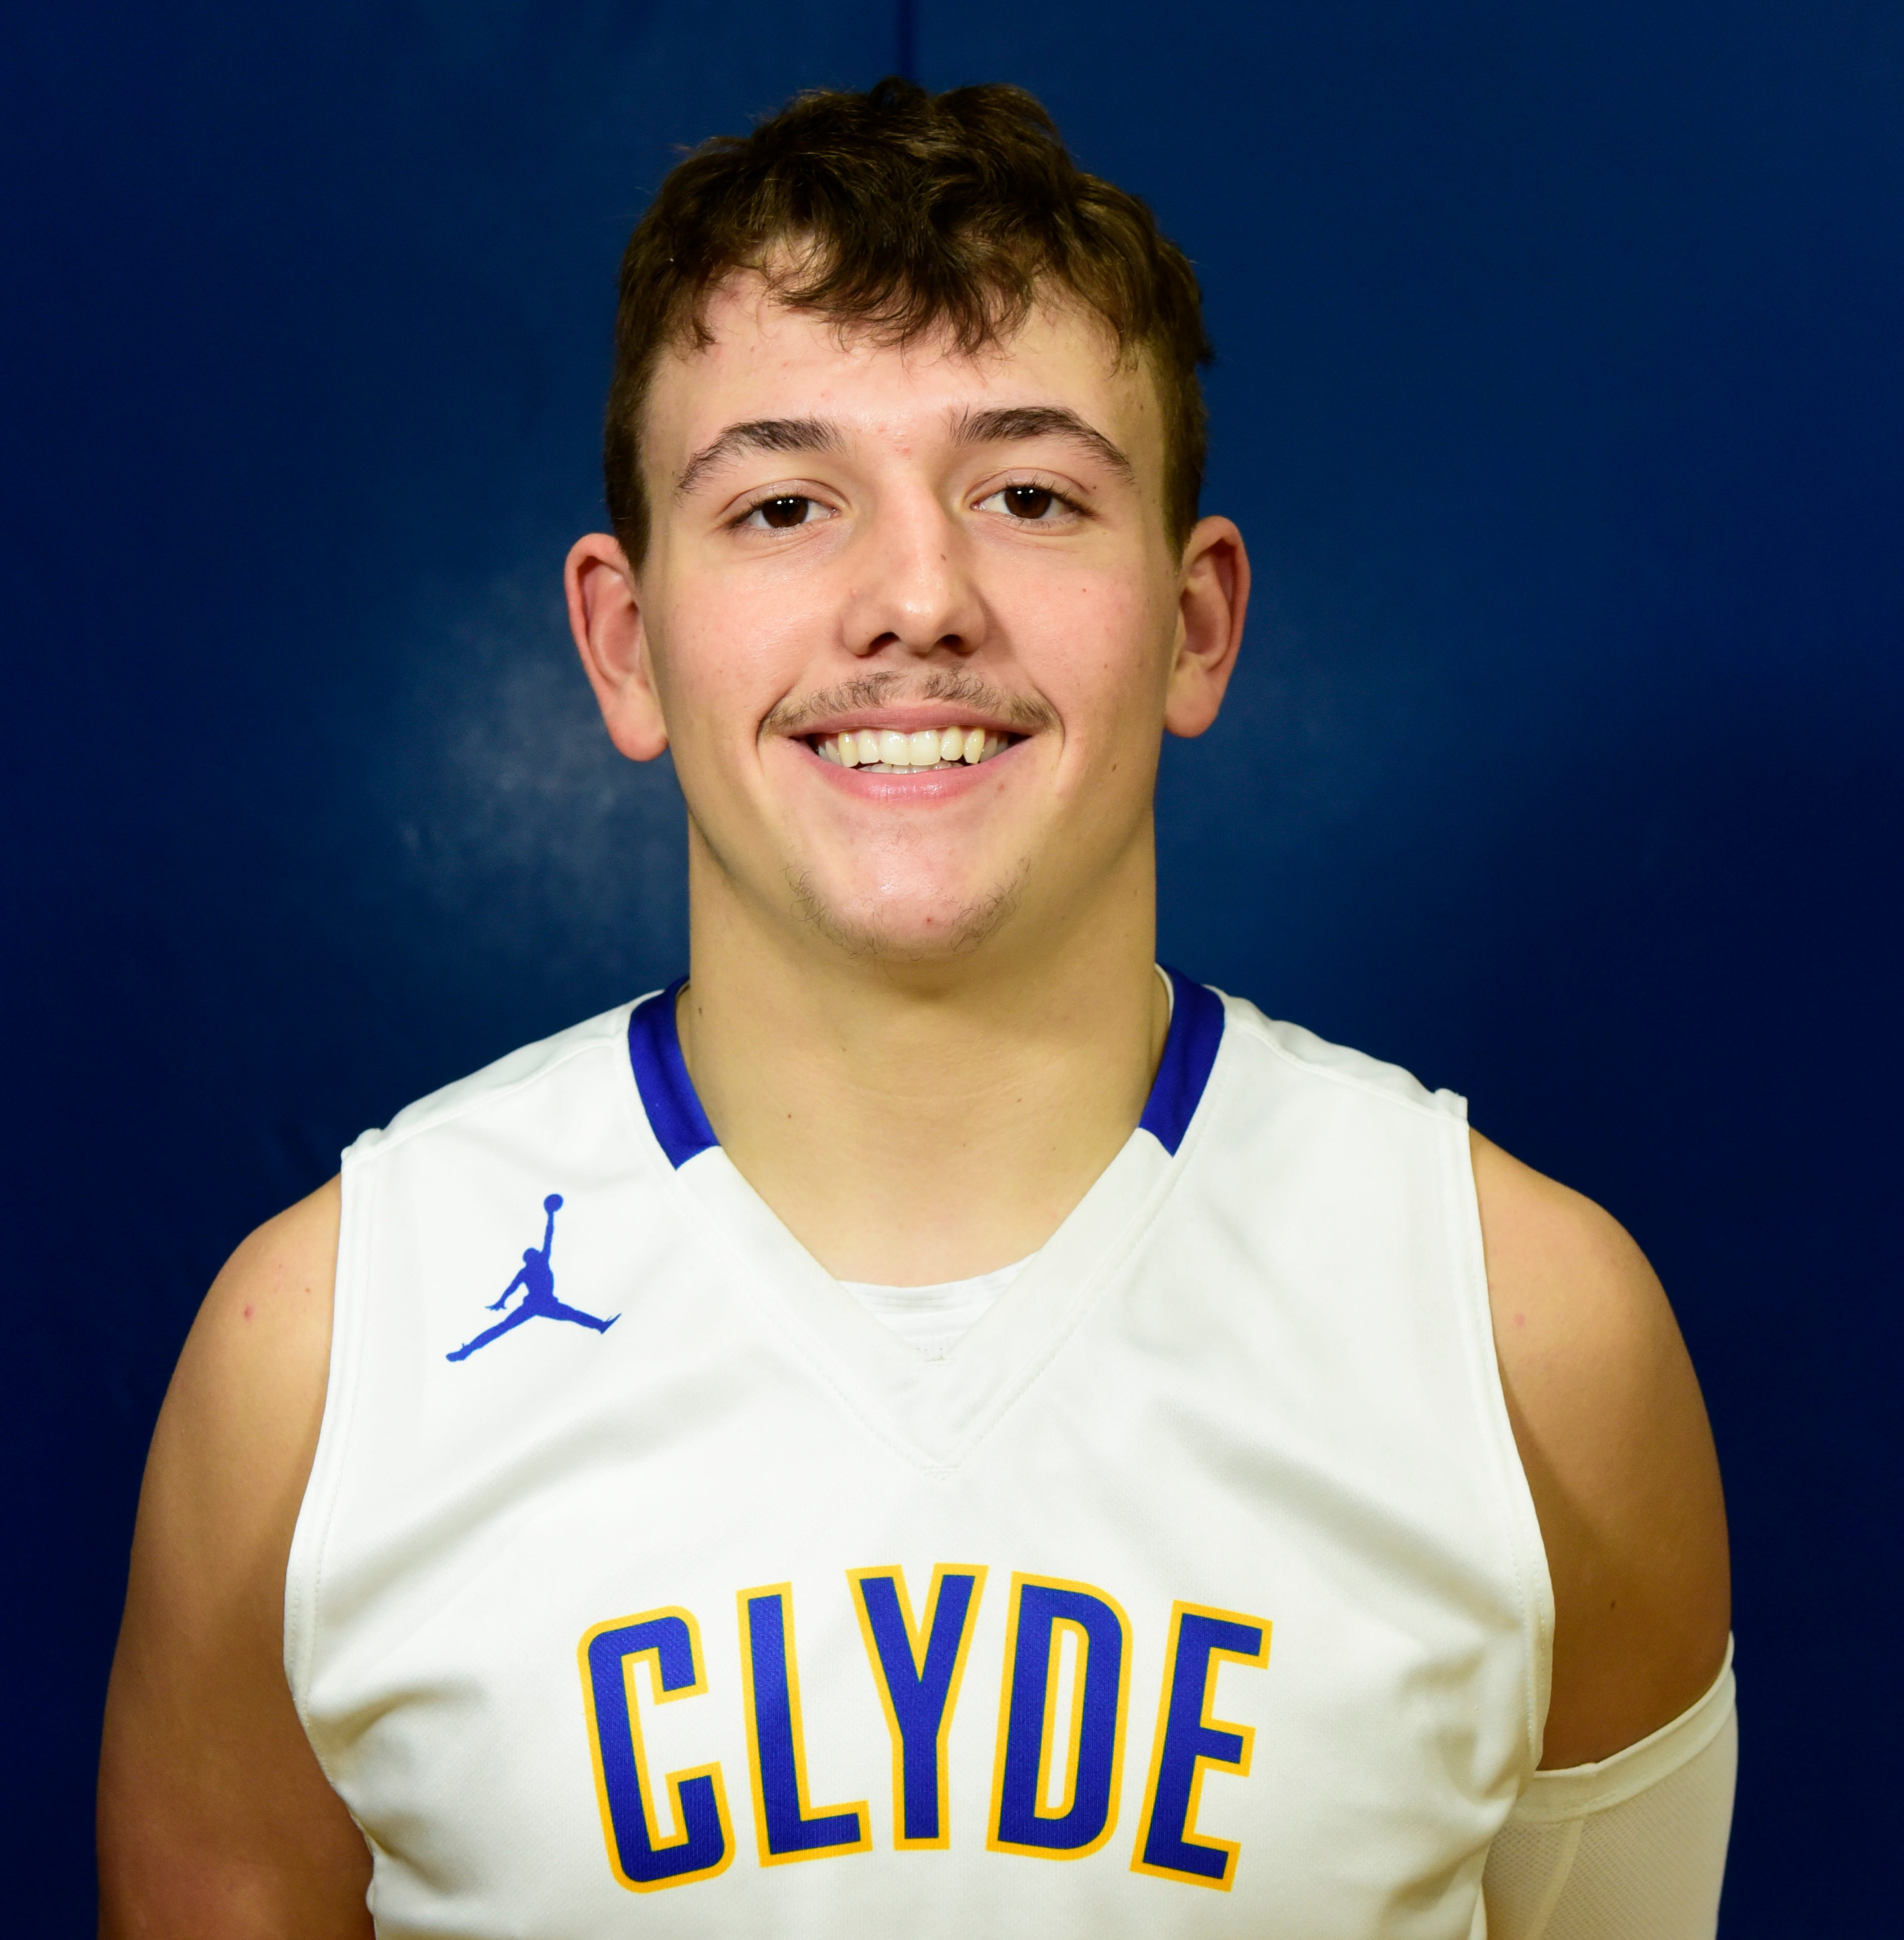 Roundup: Farrar leads Clyde past Port Clinton with 9 3-pointers